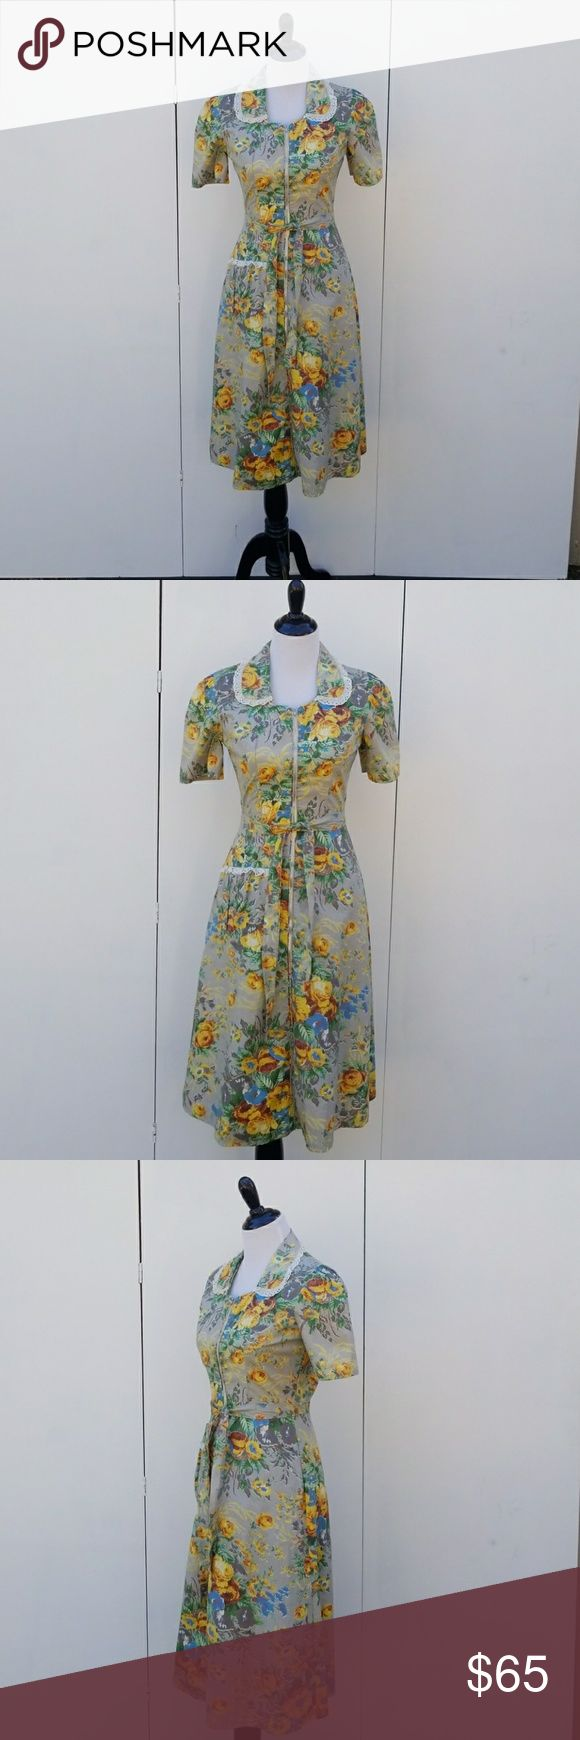 "Vintagr 40's Gray & Yellow Floral Cotton Dress In Pristine Condition. This amazing dress from the 1940's features princess darting, rounded collar, built in tie around belt, front pocket, front zip, full skirt, puckered sleeves and lace trimming. Gray with yellow floral pattern.  the measurements are bust 36"", waist 26"" , hips up to 40"", length 46"" from back of nap. Vintage Dresses Midi"